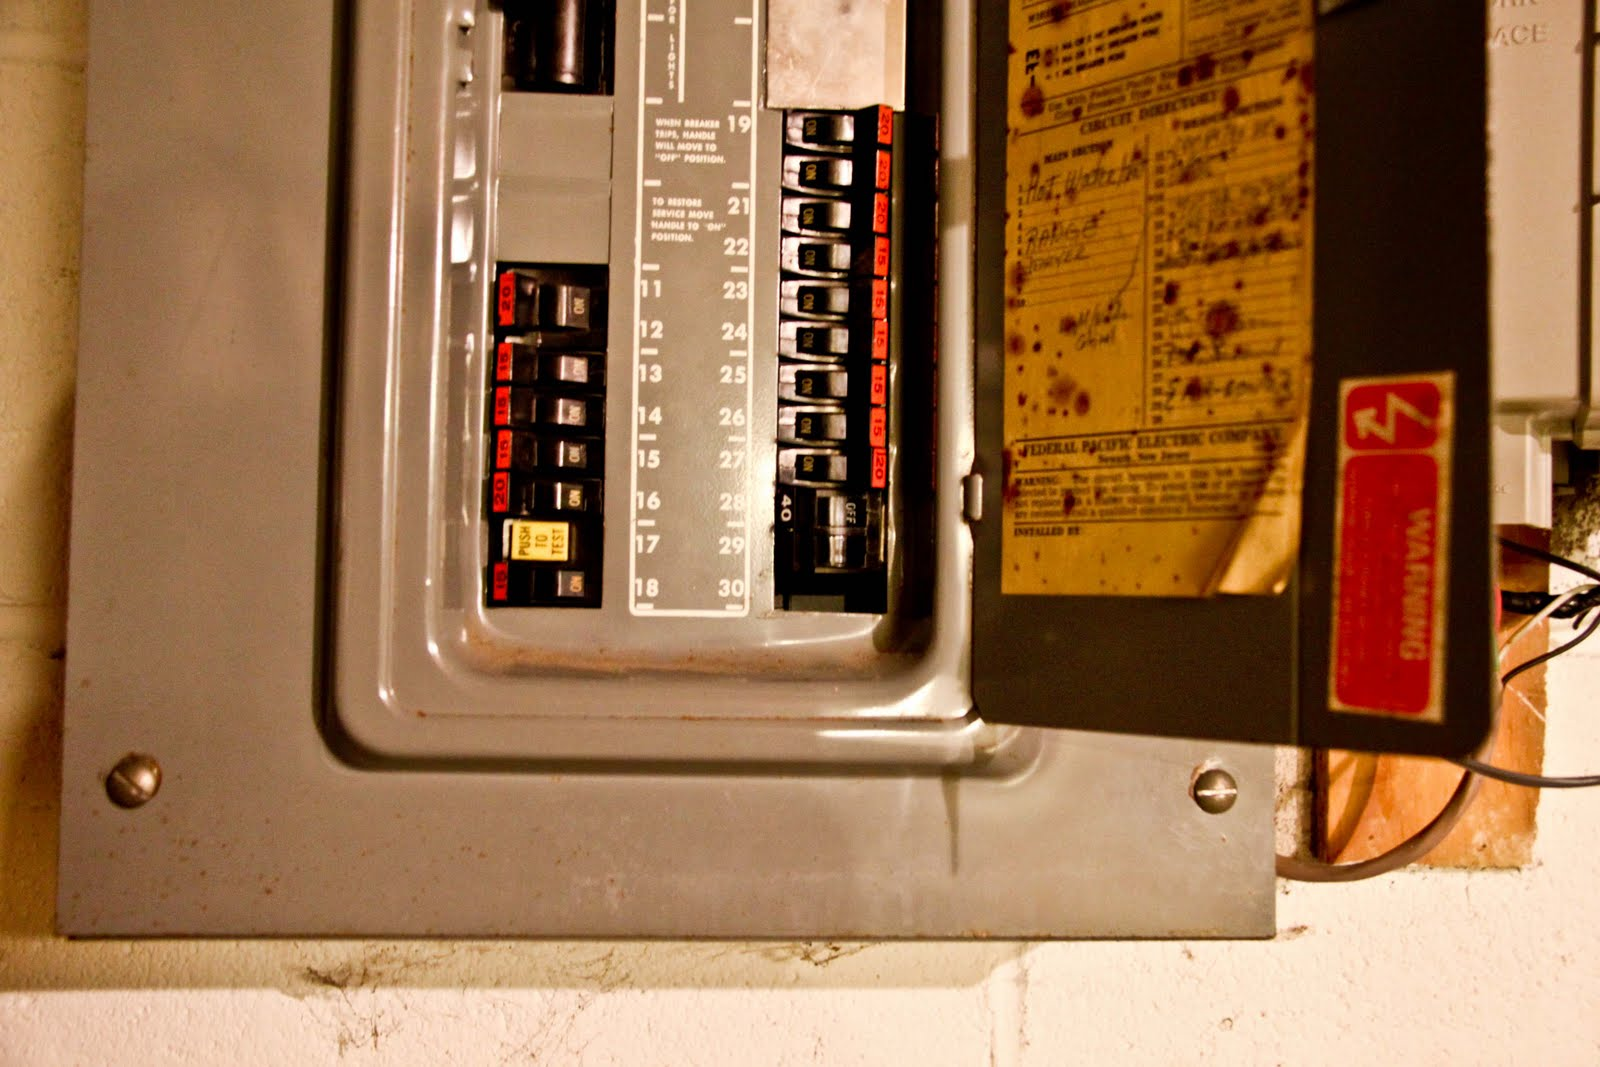 replacing fuse on central ac unit fdo s workspace air conditioner electrical box old style air conditioner fuse box [ 1600 x 1067 Pixel ]